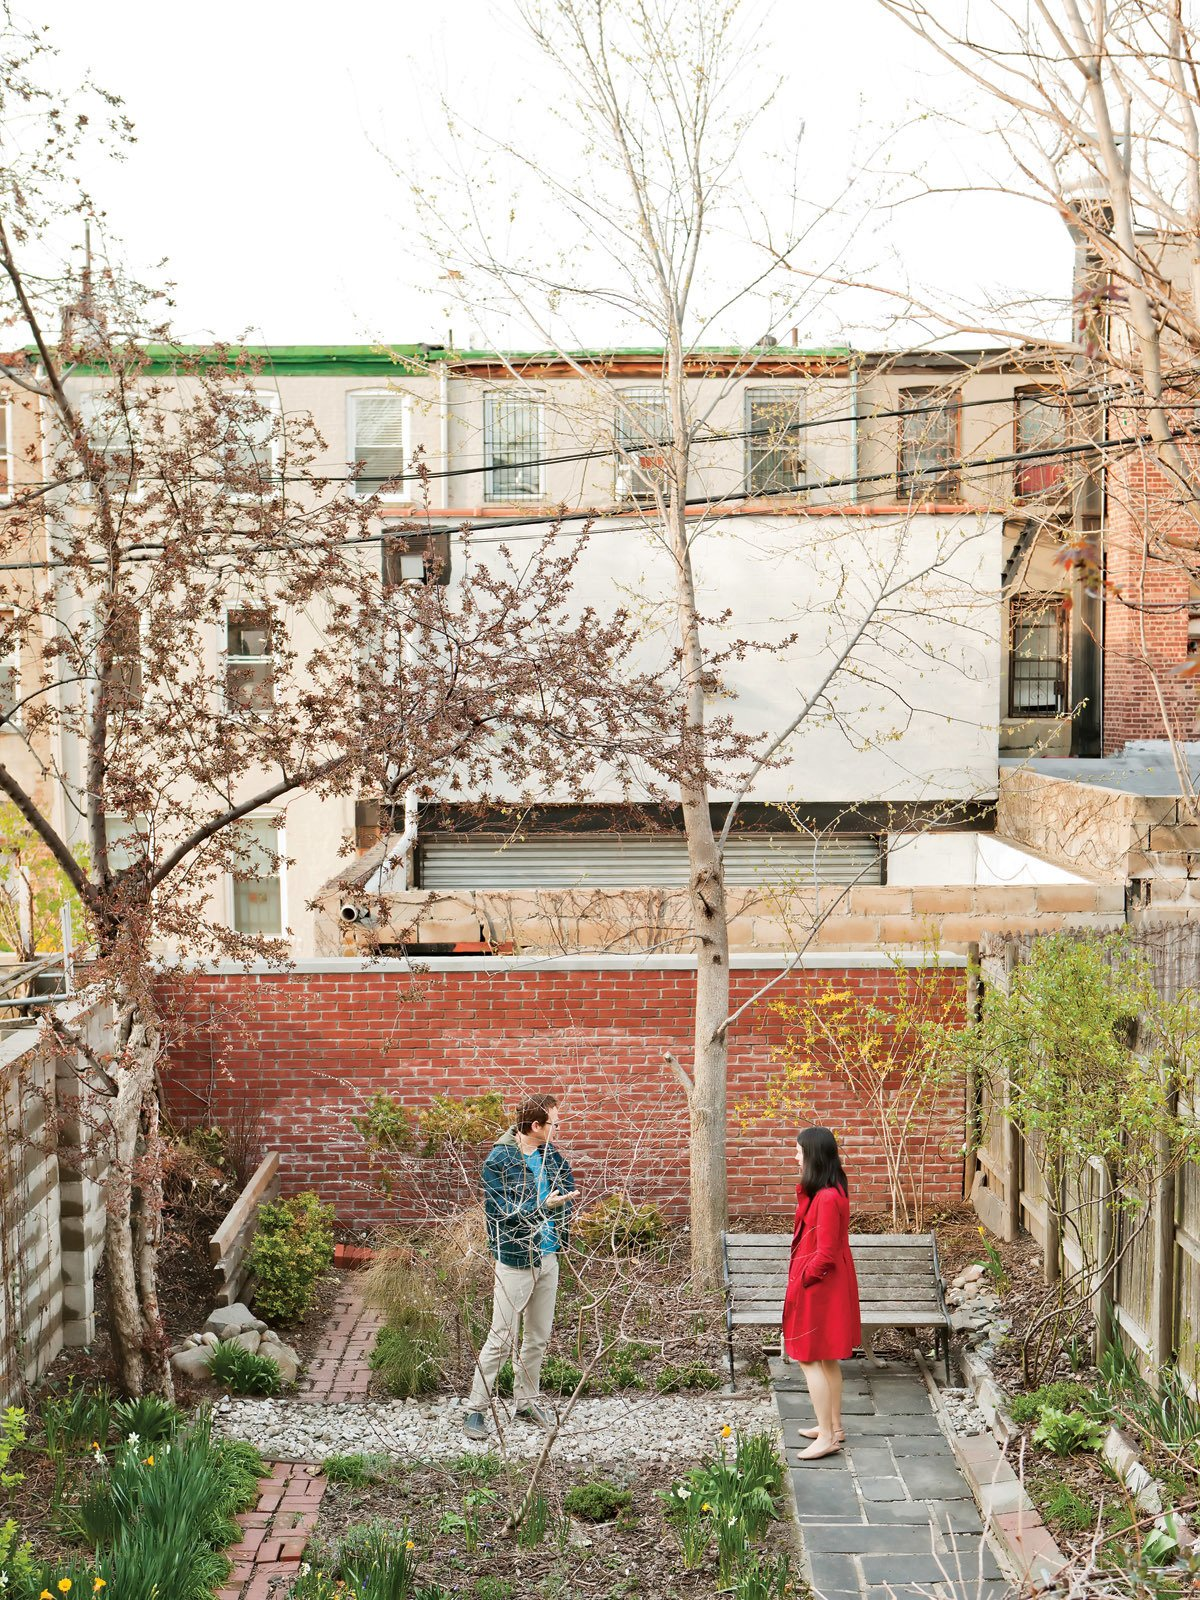 In Brooklyn, Jeff Sherman used rubble bricks and concrete dug up from the backyard and crushed to create his green garden. Catch the story in our Japan Style issue on newsstands now!   Don't miss a word of Dwell! Download our  FREE app from iTunes, friend us on Facebook, or follow us on Twitter!  Seven Great Outdoor Spaces by Miyoko Ohtake